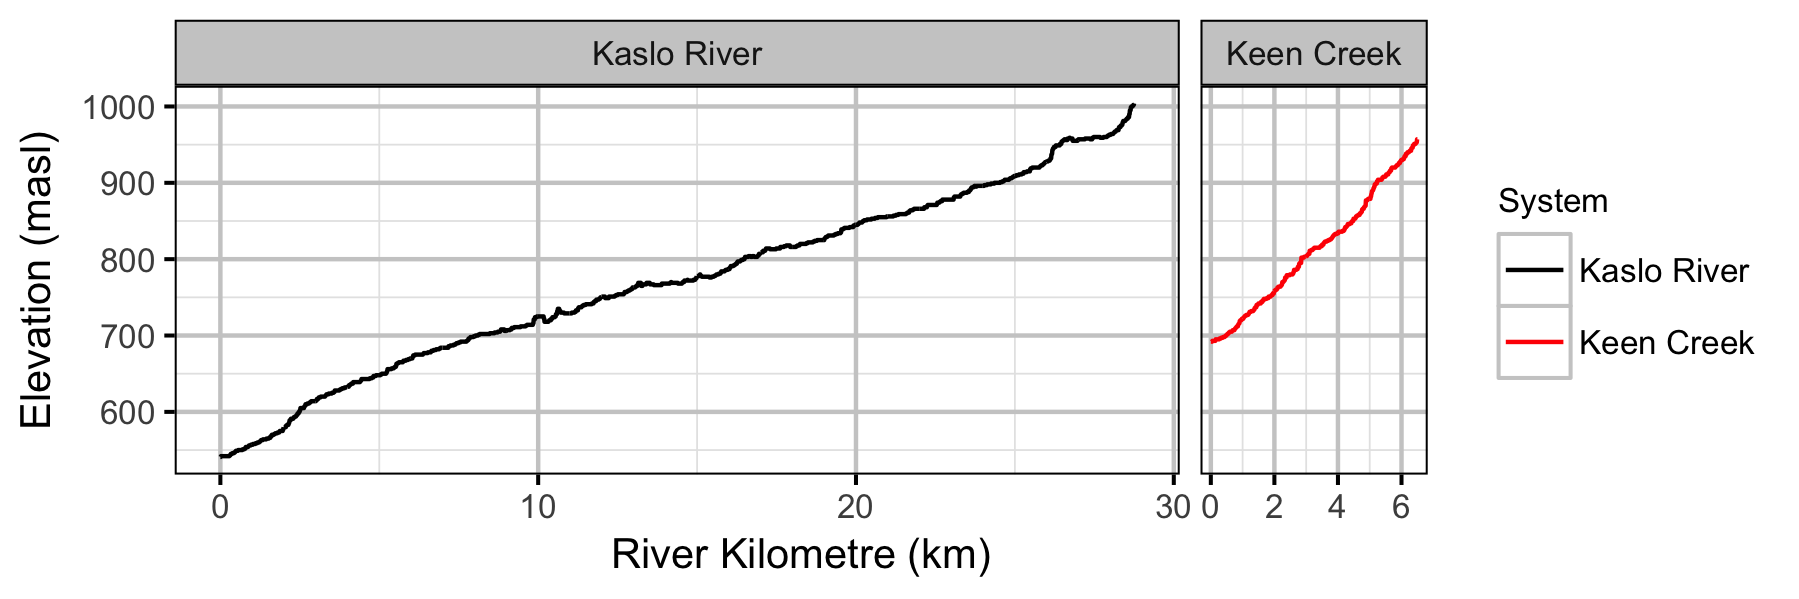 figures/rkm/elevation.png